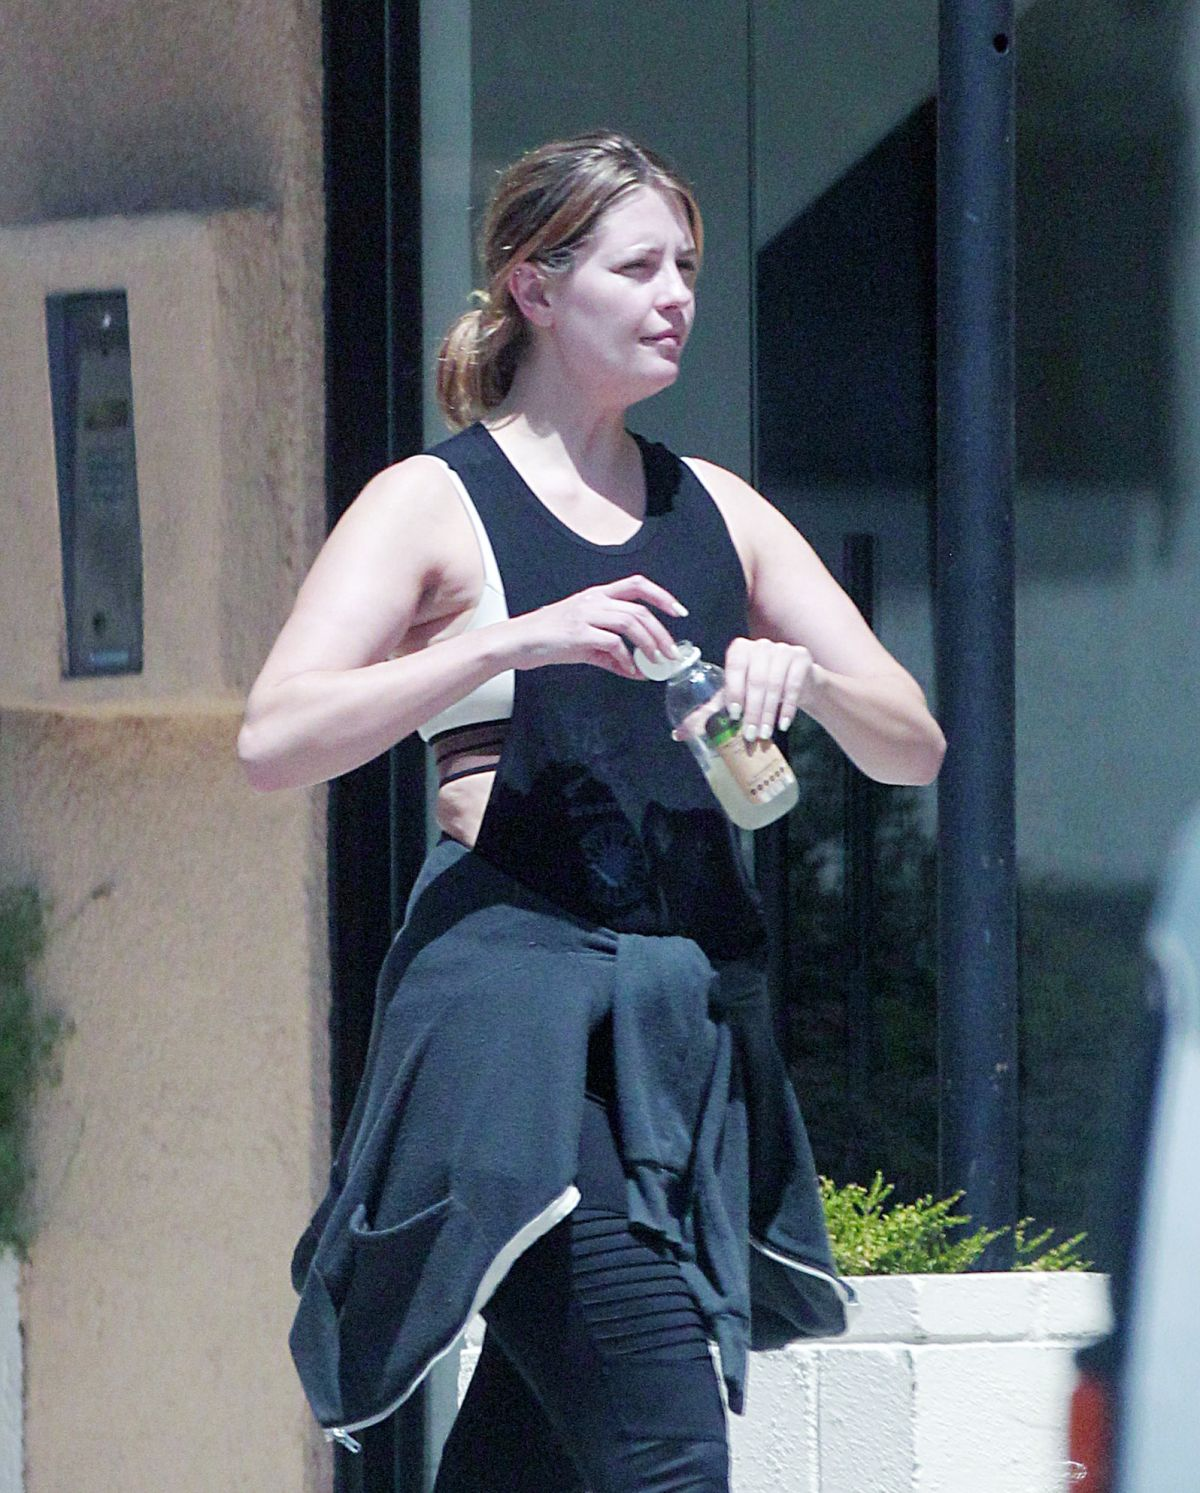 Mischa Barton Hydrates herself after showing some signs of weight gain as she was coming out of the gym in Beverly Hills - Celebzz